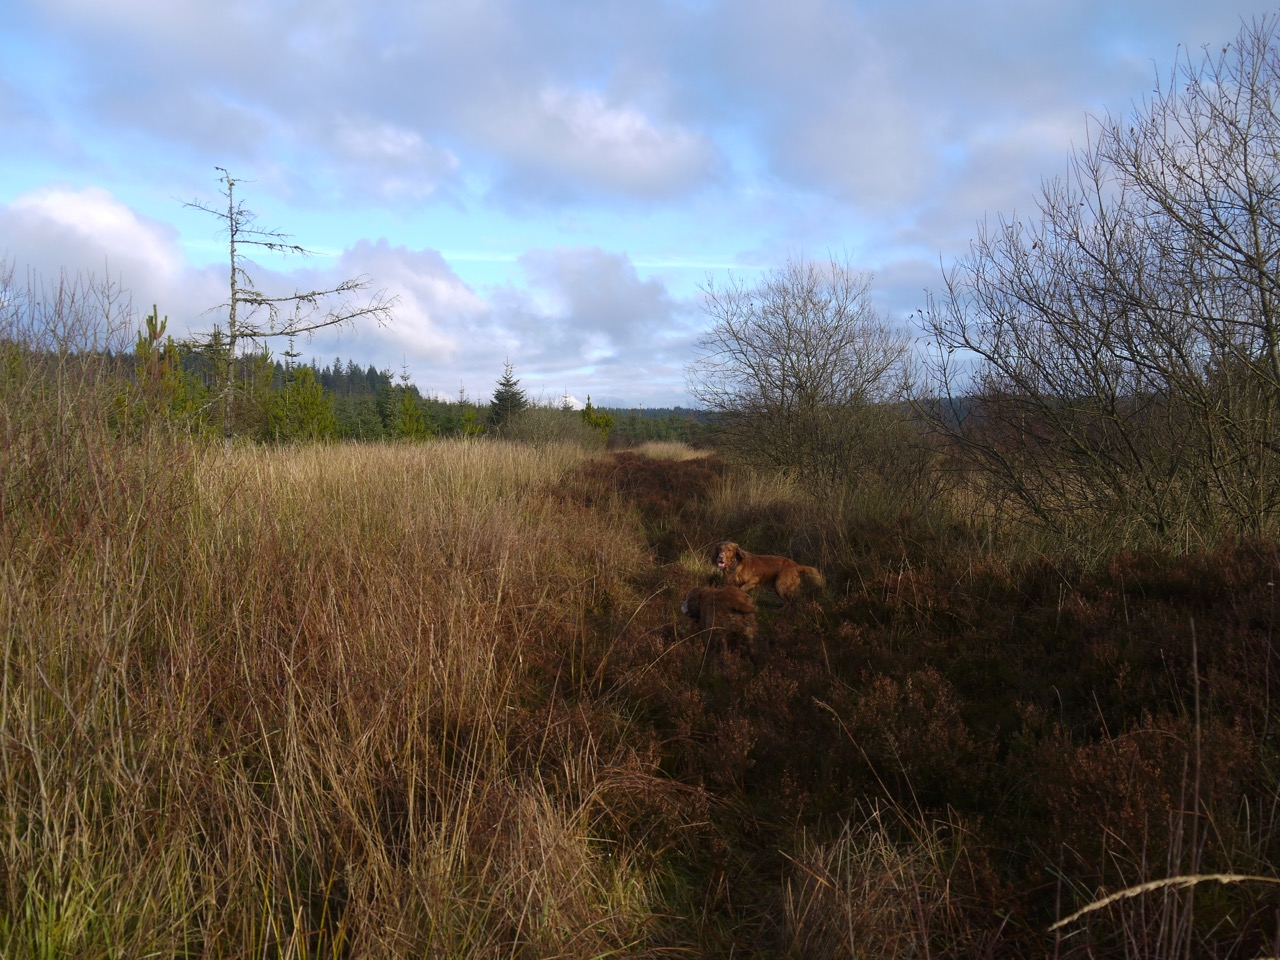 The faint track beside the railway